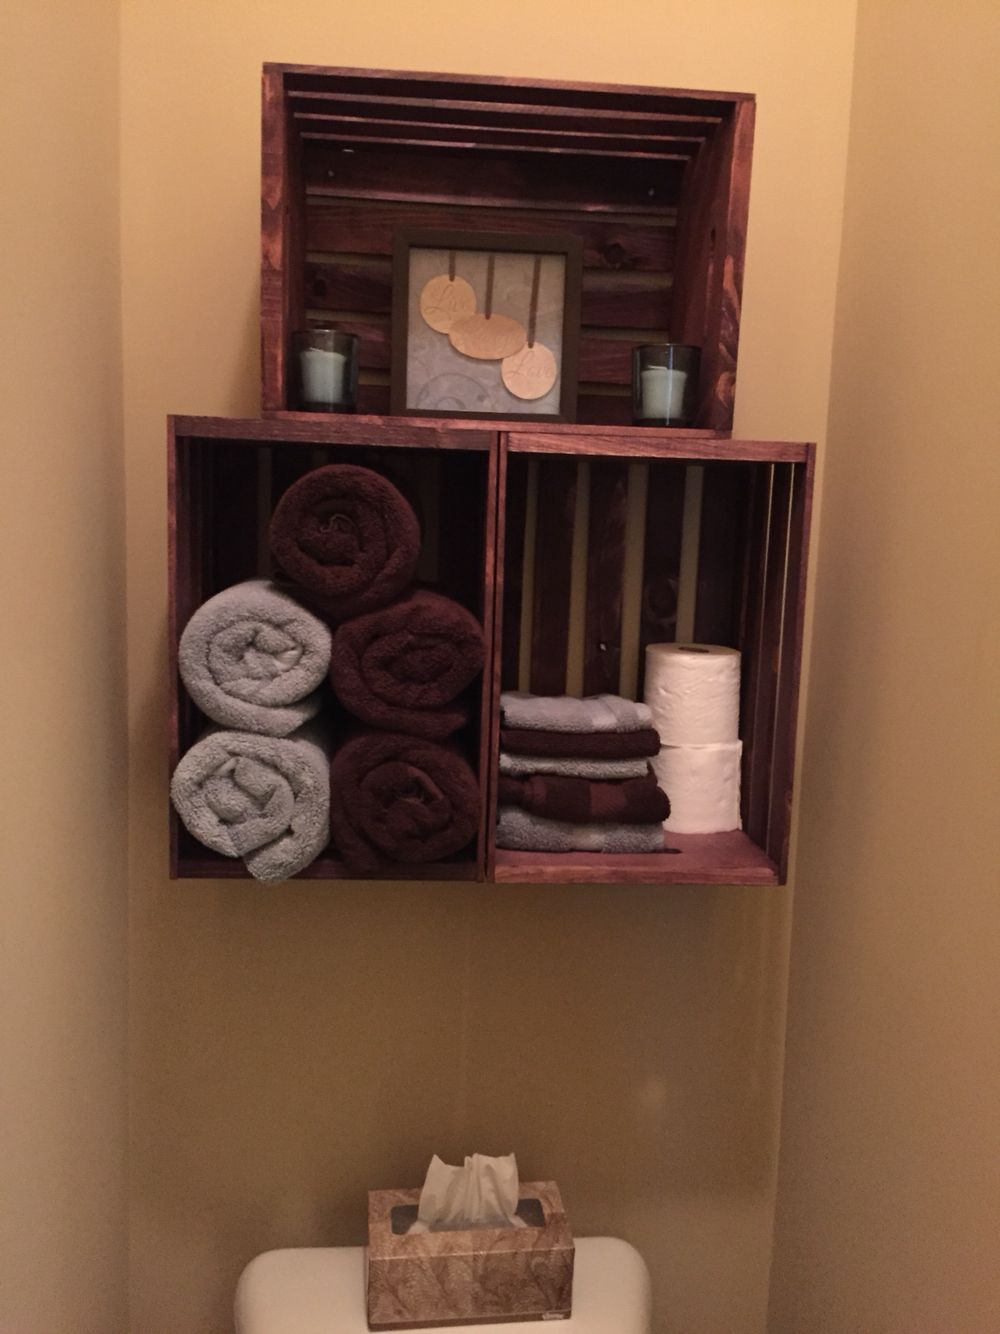 Crate stacked shelves above toliet